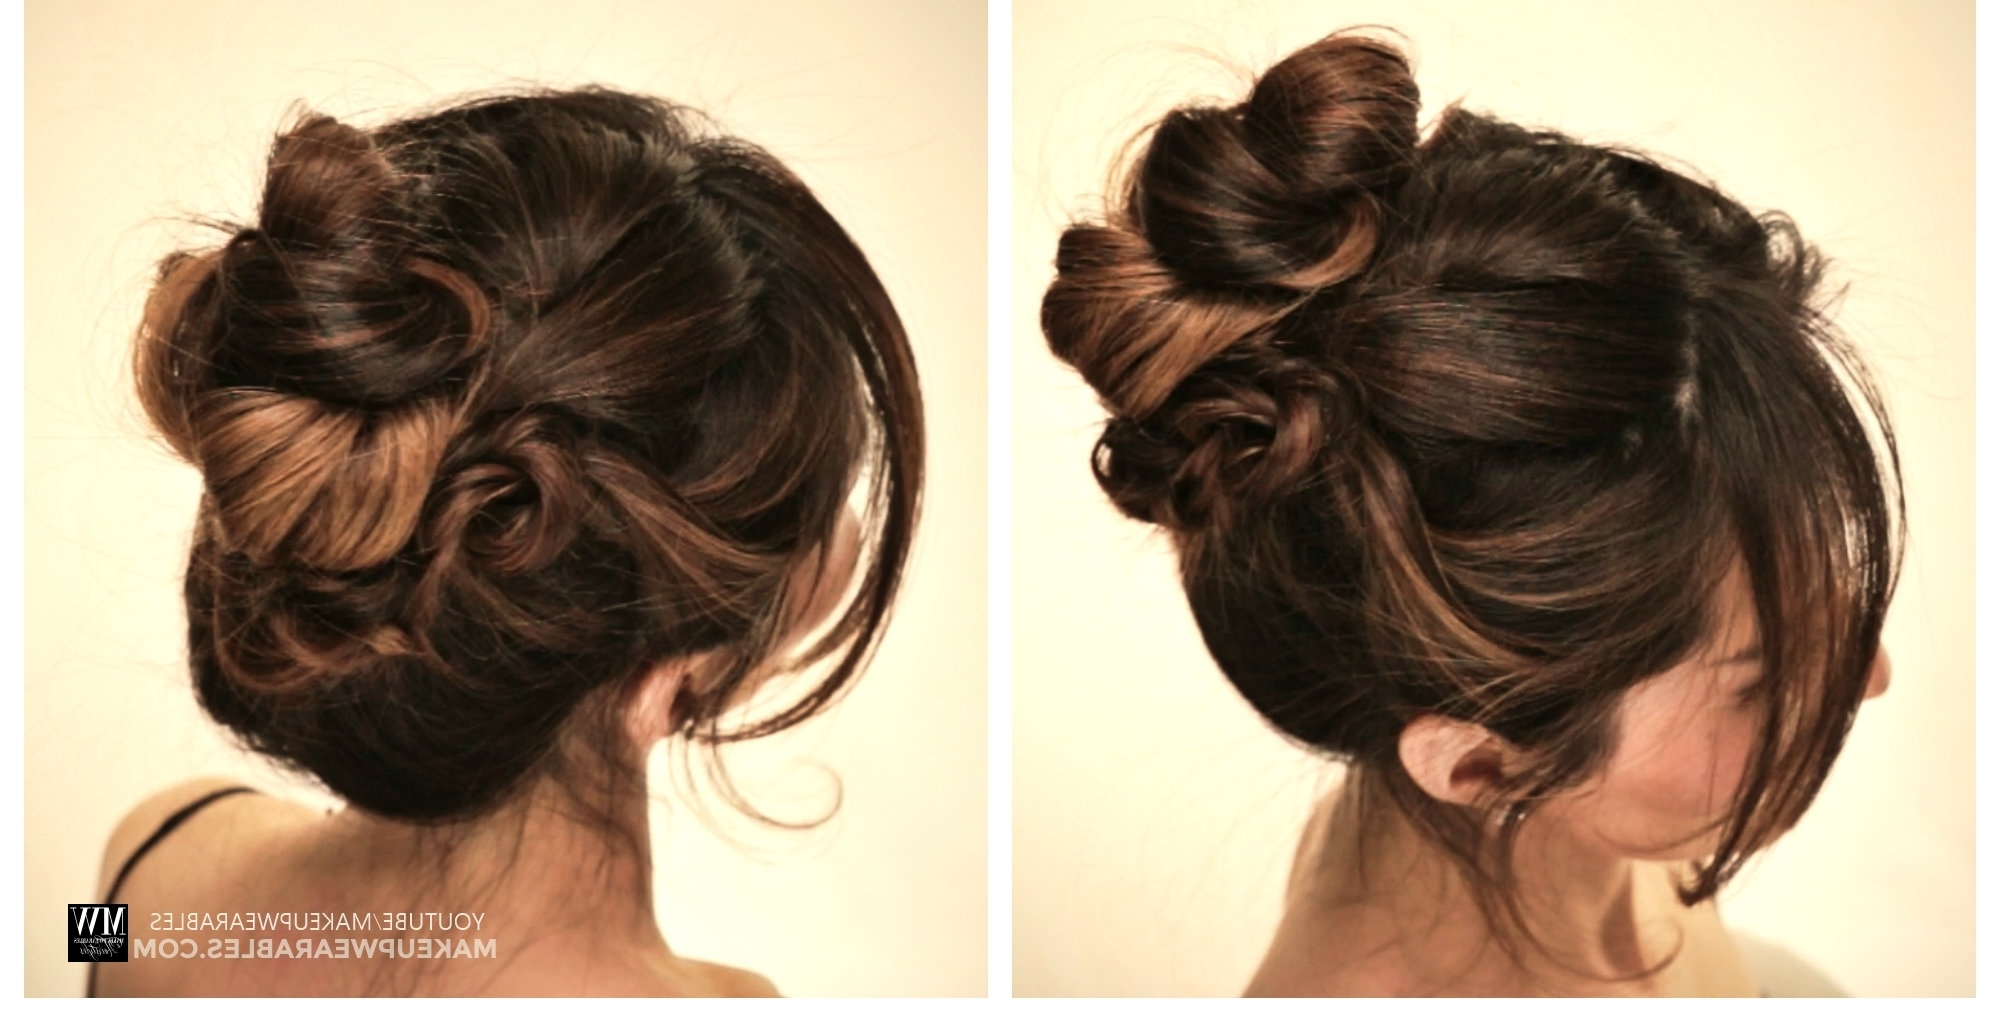 How To: 5 Amazingly Cute + Easy Hairstyles With A Simple Twist Within Quick Updo Hairstyles (View 11 of 15)